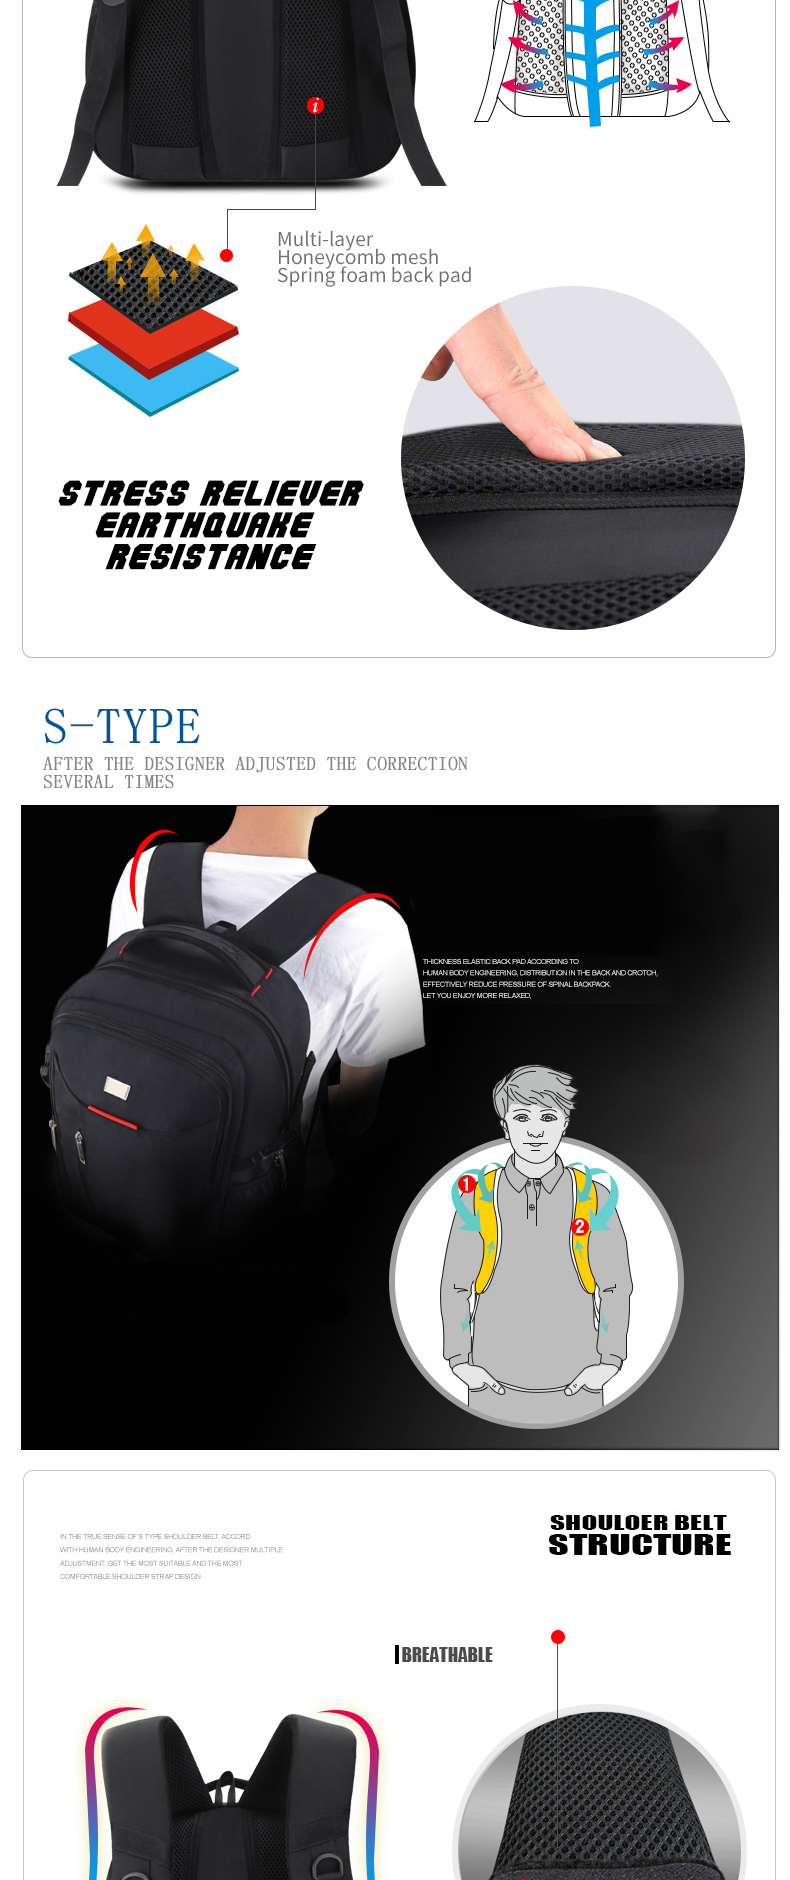 【ReLiVer】 Stress-Relief Double-Shoulder Strap Best Way to Reduce Heavy Burden on Shoulder for School Work Business Trip Hiking Traveling Camera Bags